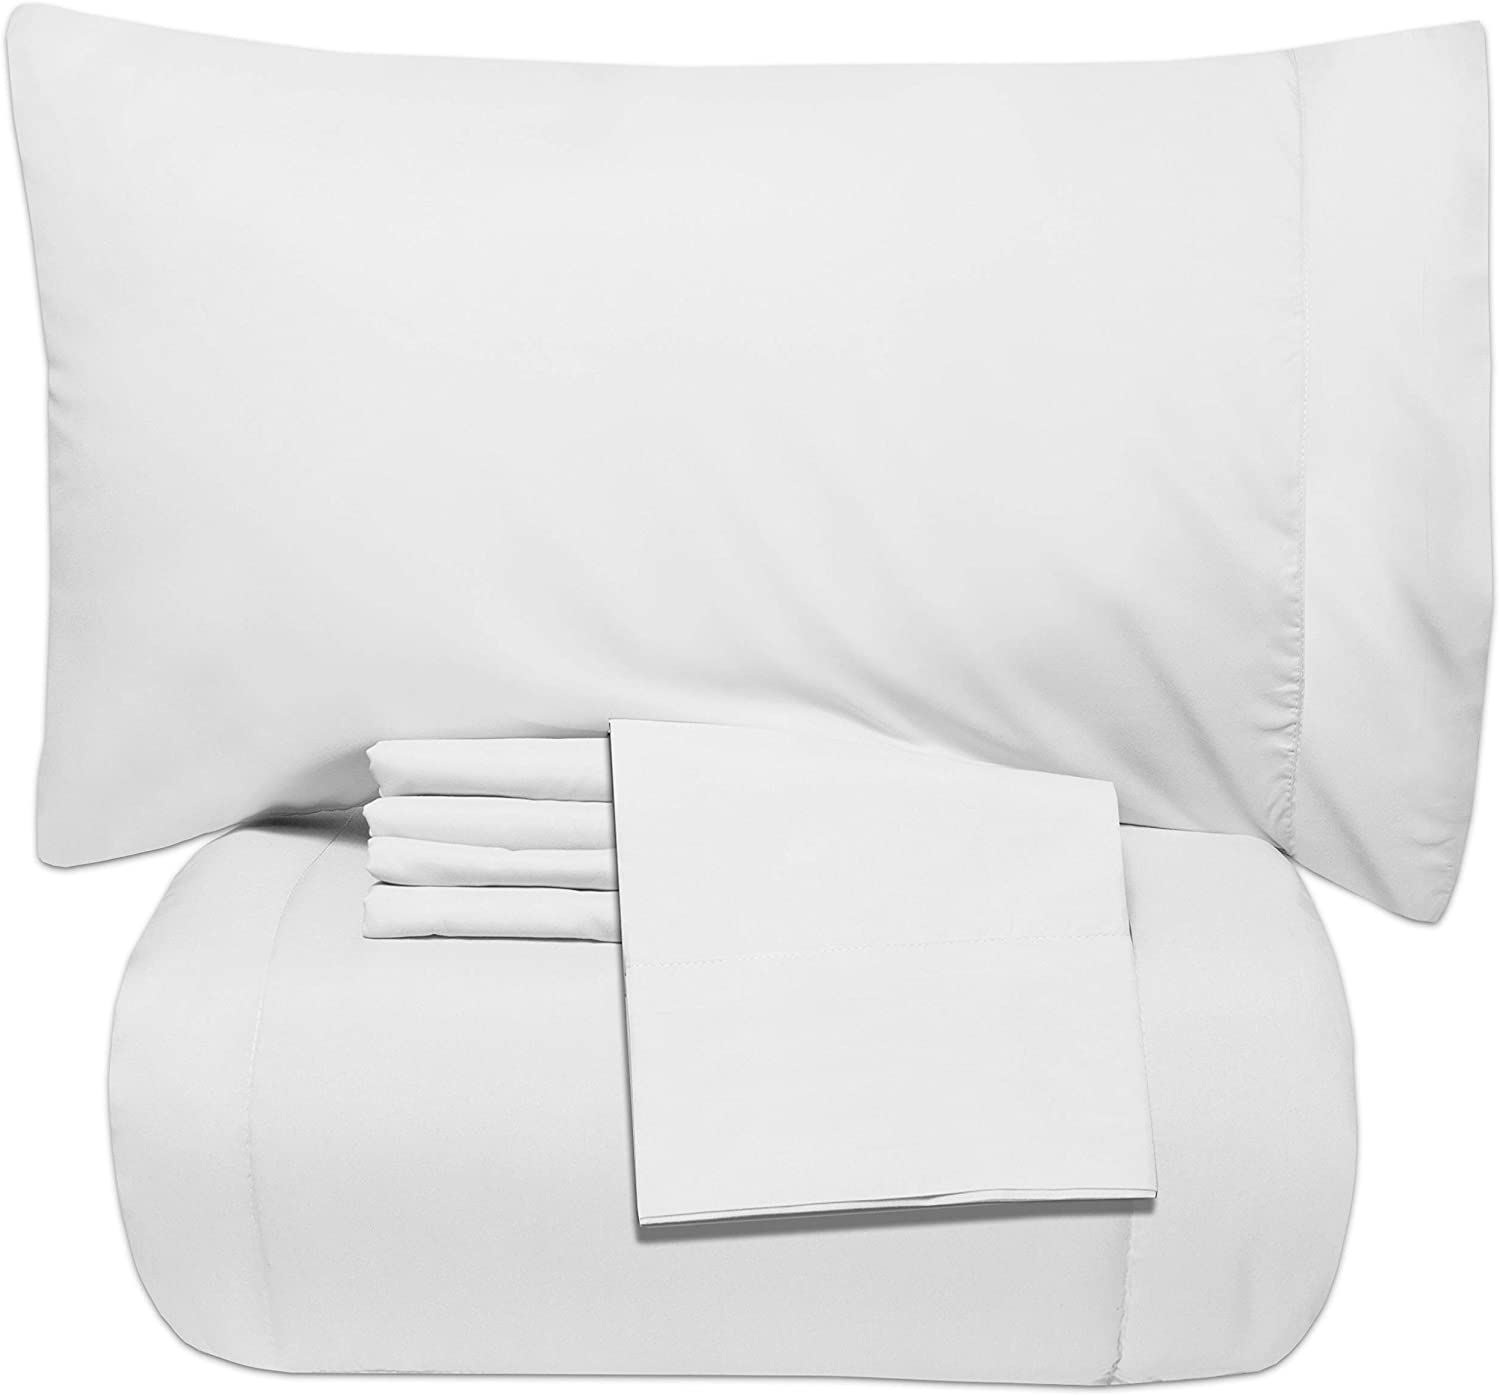 Sweet Home Collection 5 Piece Bag Comforter Set Solid Color All Season Soft Down Alternative Blanket & Luxurious Microfiber Bed Sheets, Twin, White, 7